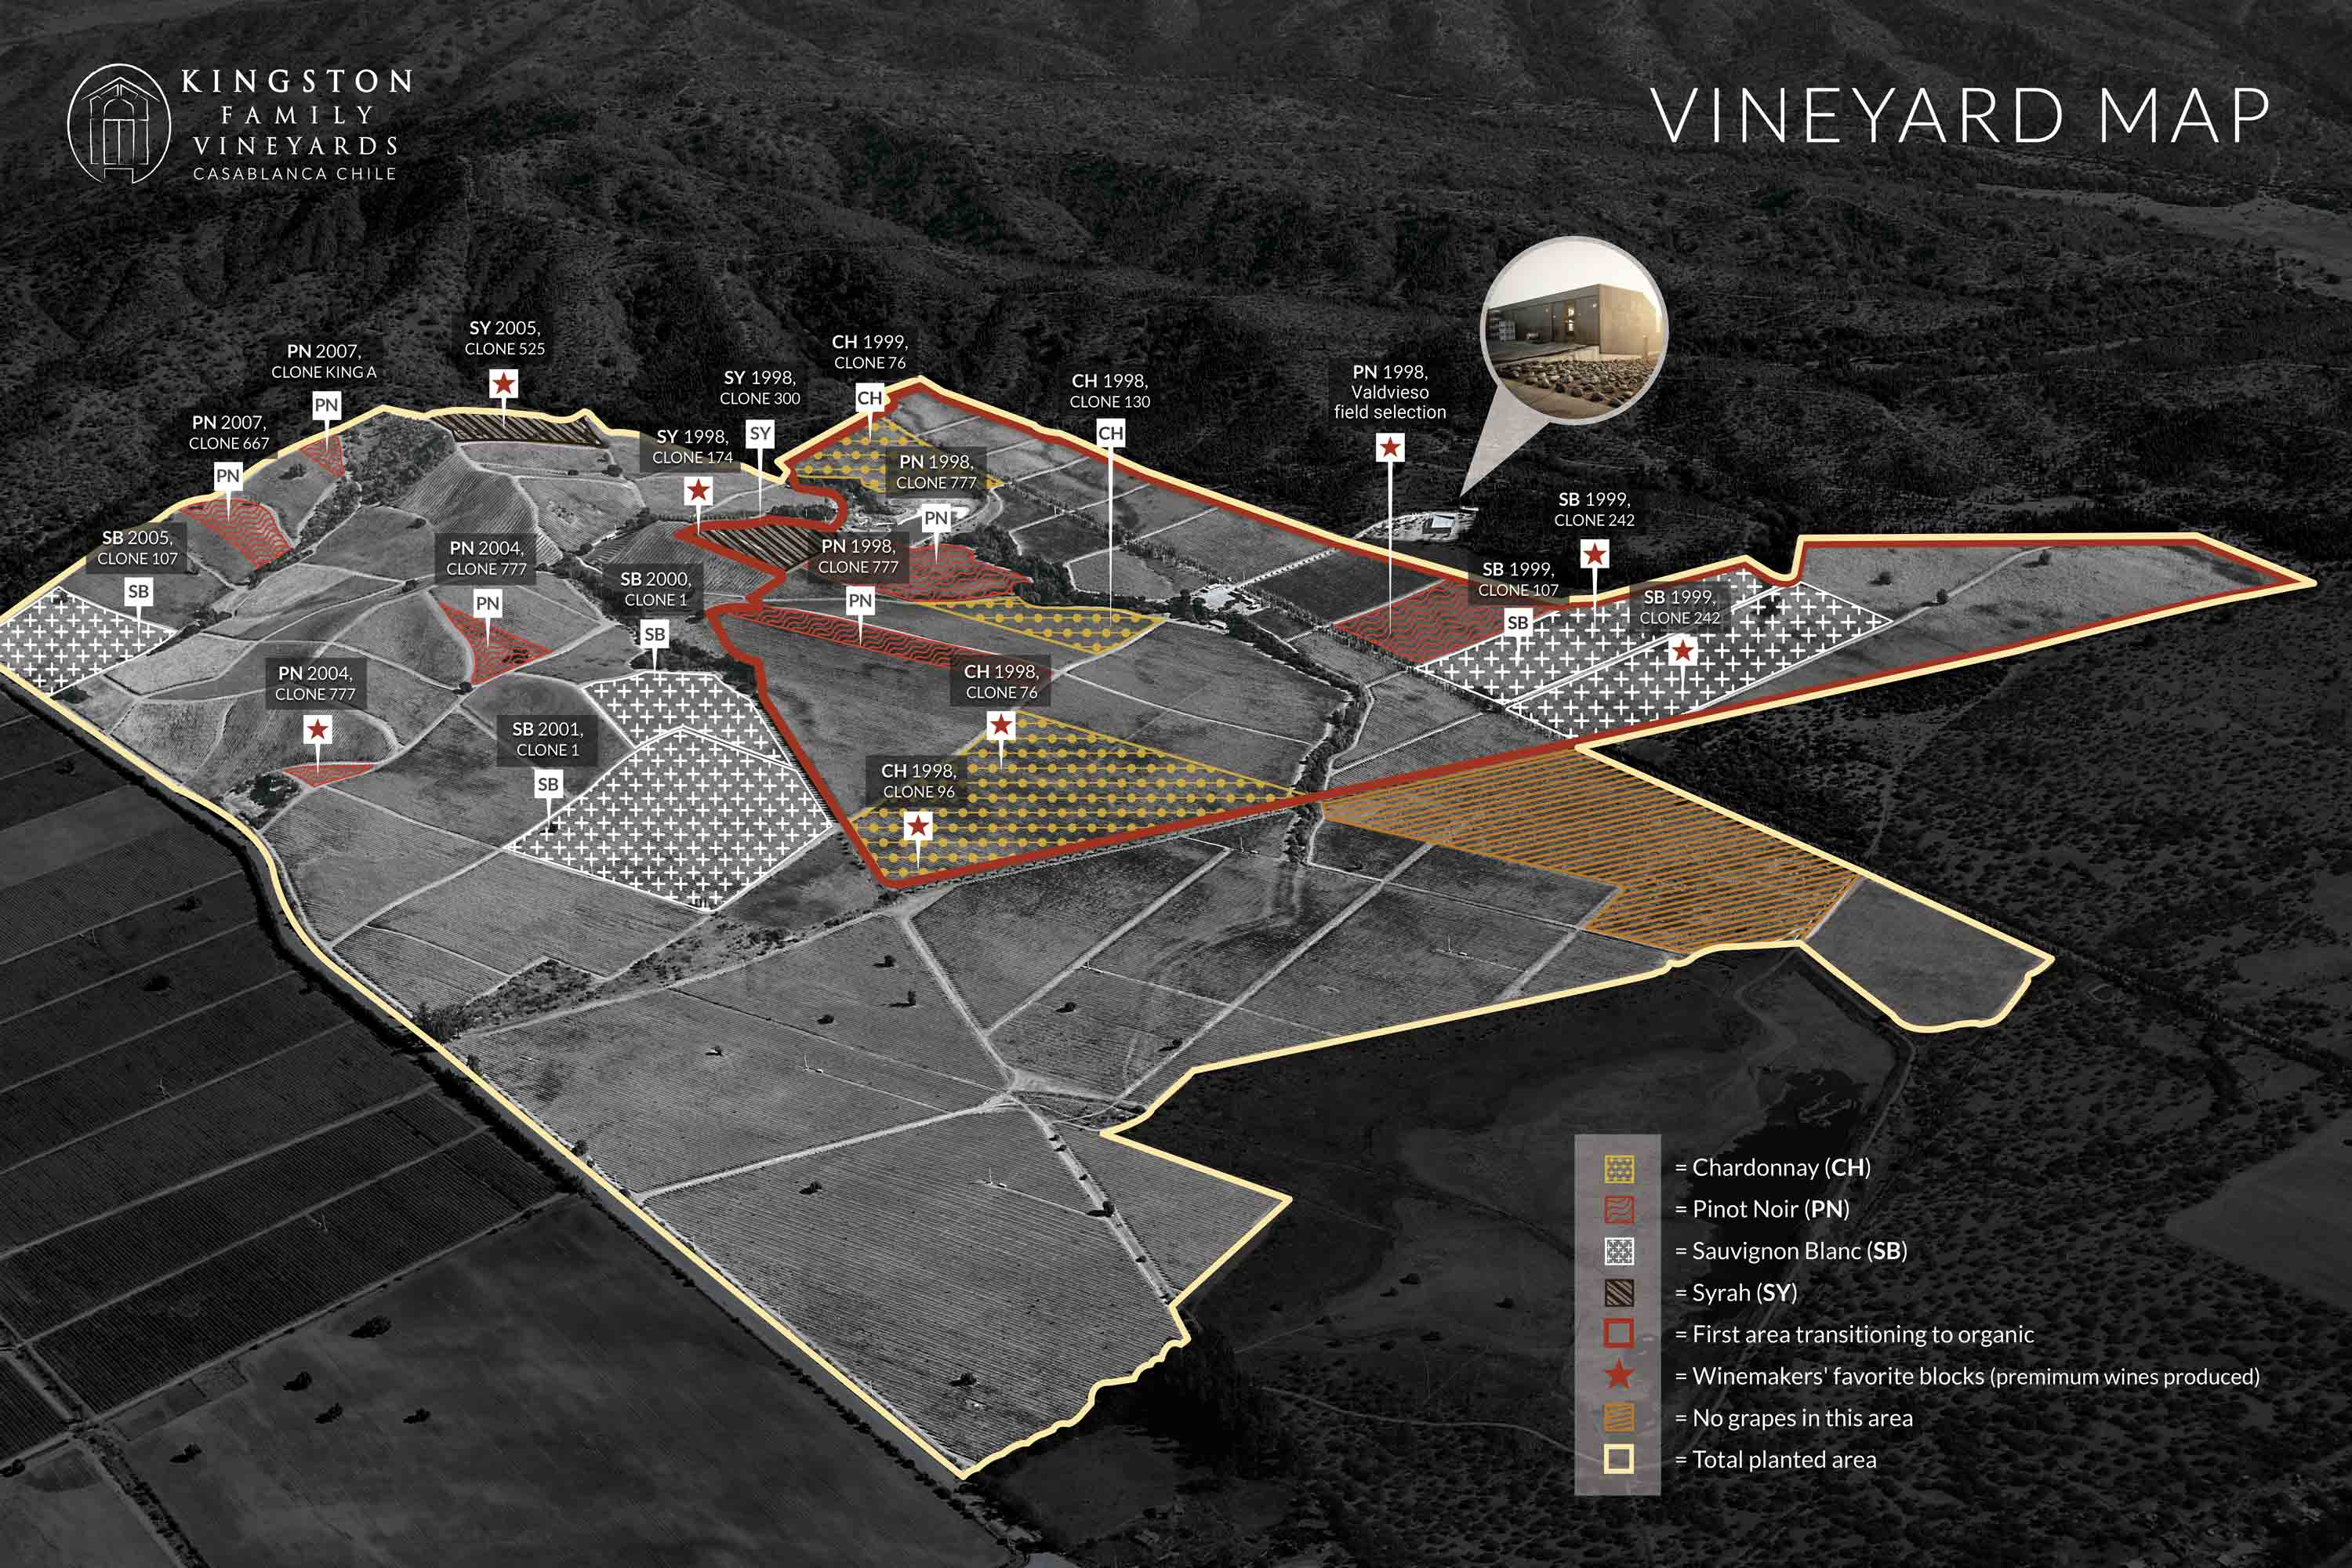 The first area of our vineyards transitioning to organic is outlined in red.